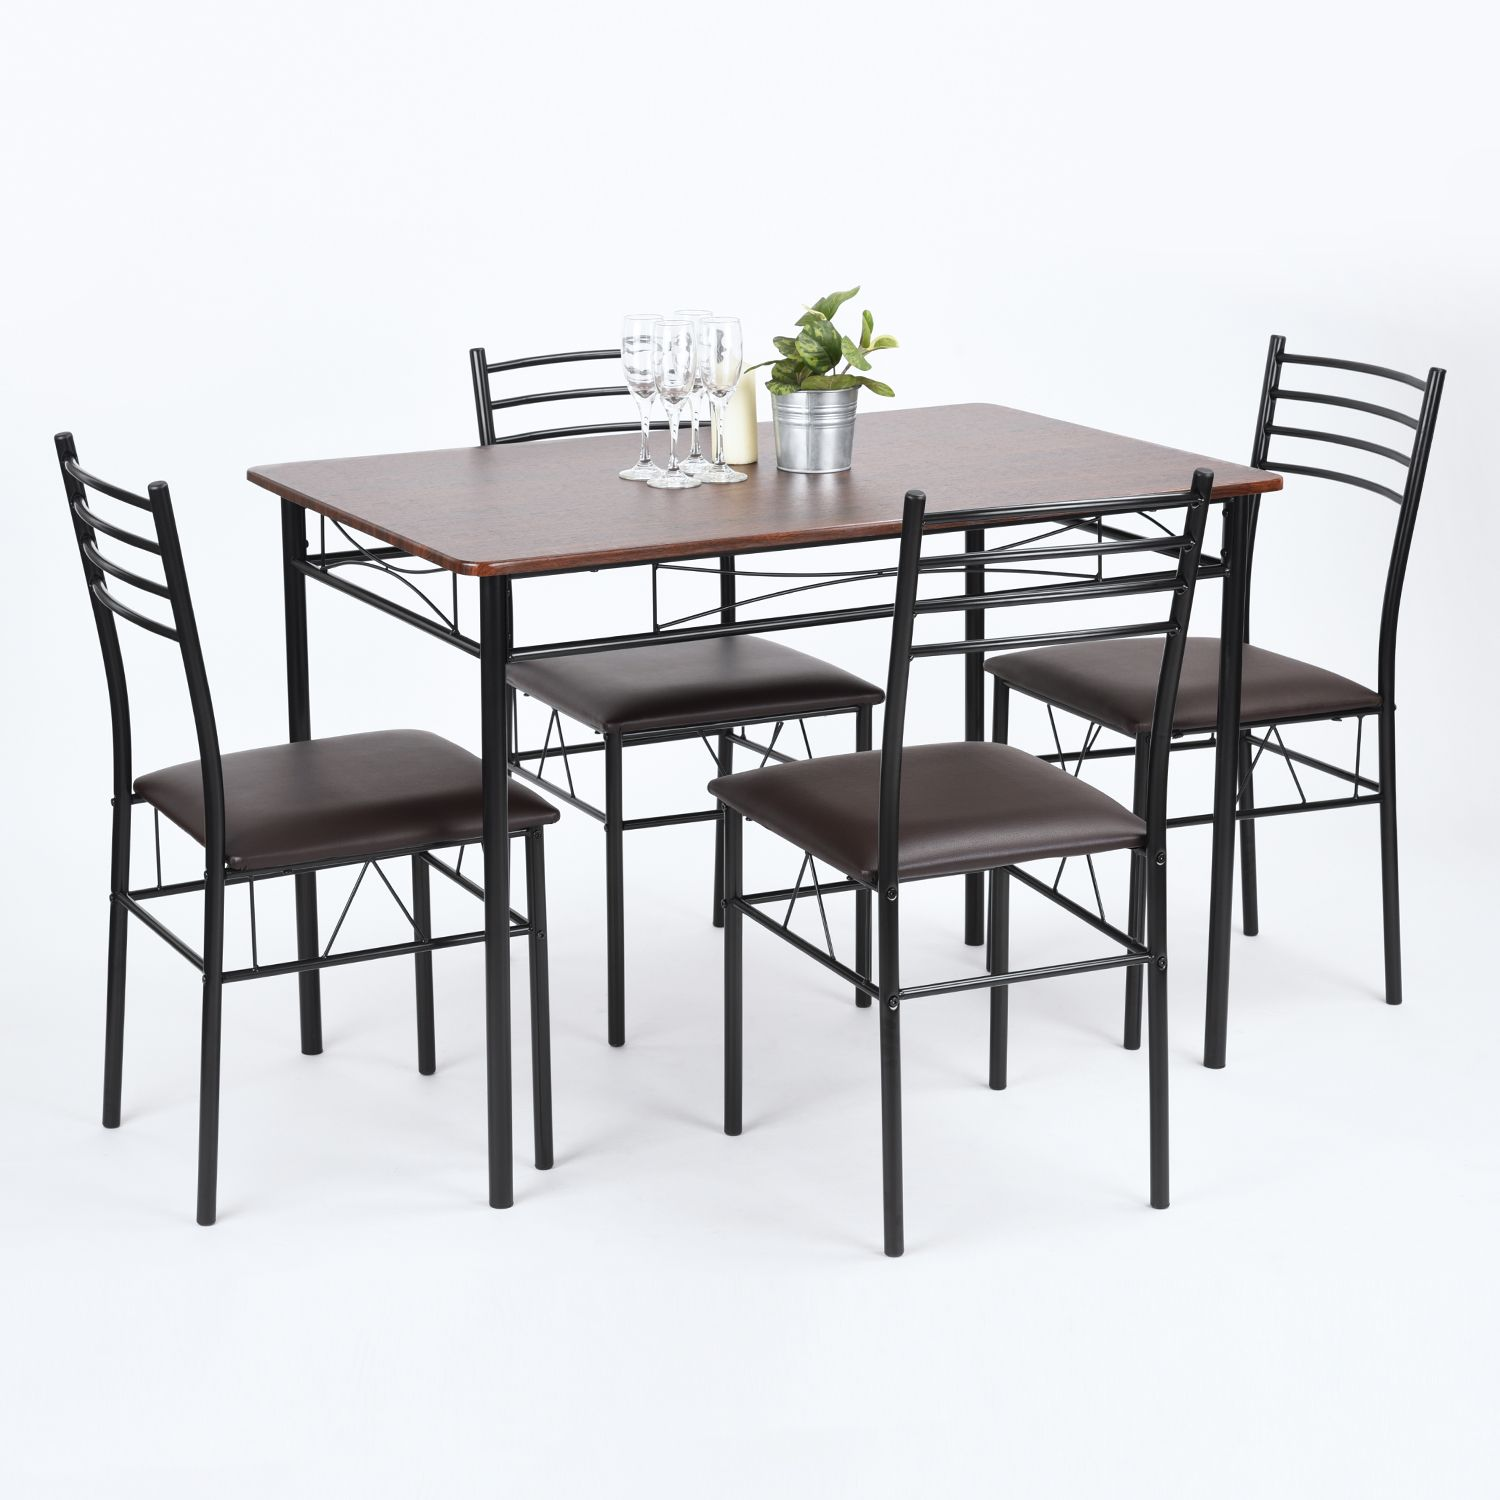 4 Seater 100cm Dining Table Set Walnut Metal 5 Piece Kitchen Room